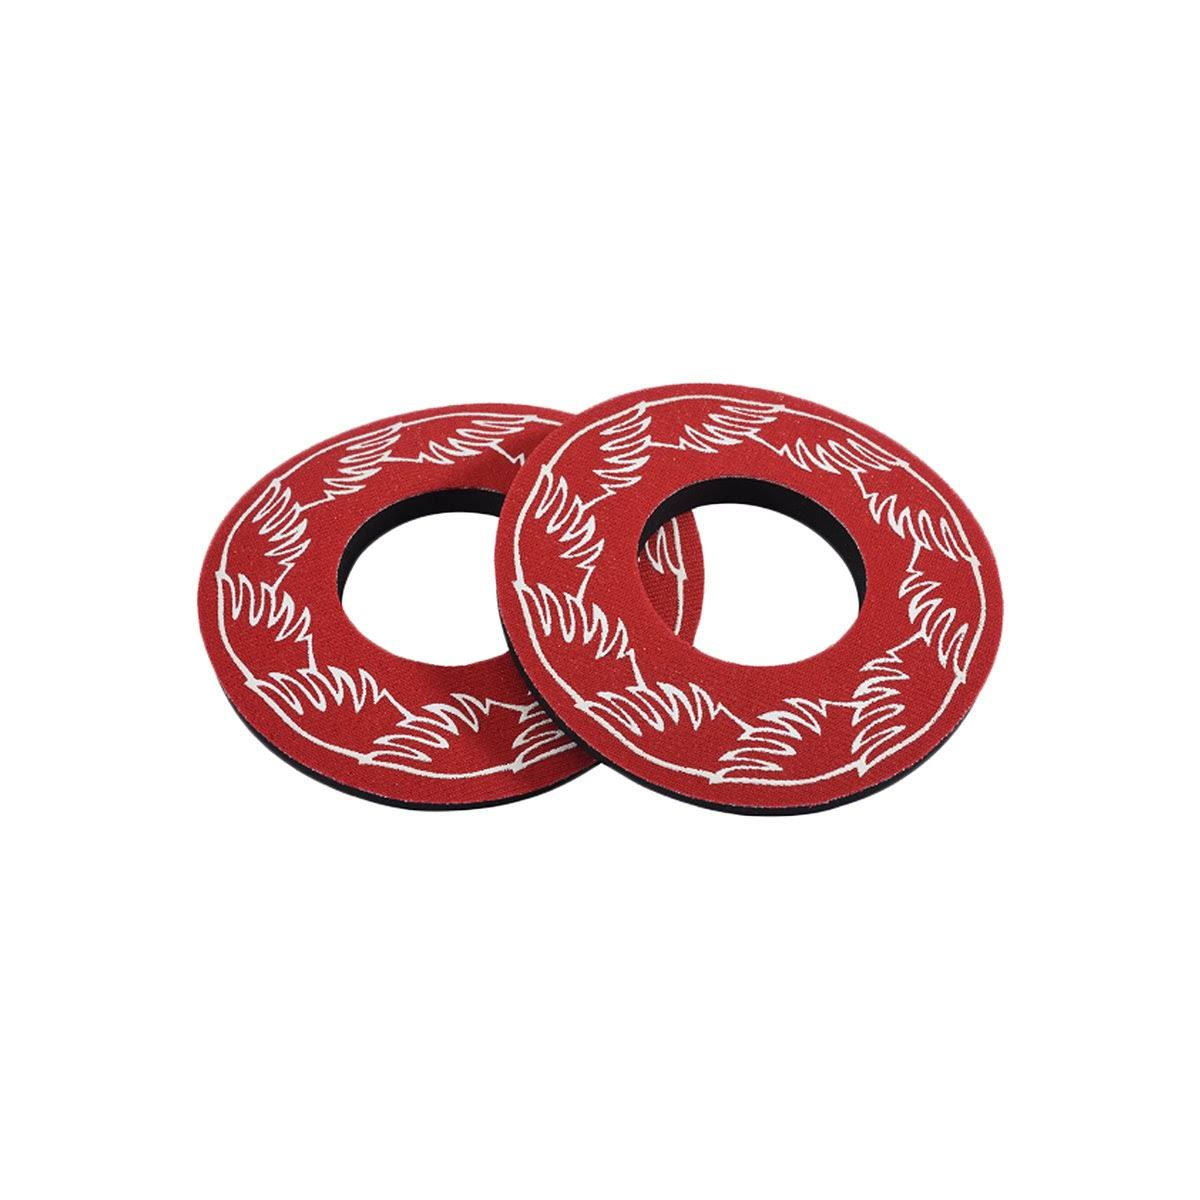 Se Racing Wing BMX Grip Donuts - Red, Pair